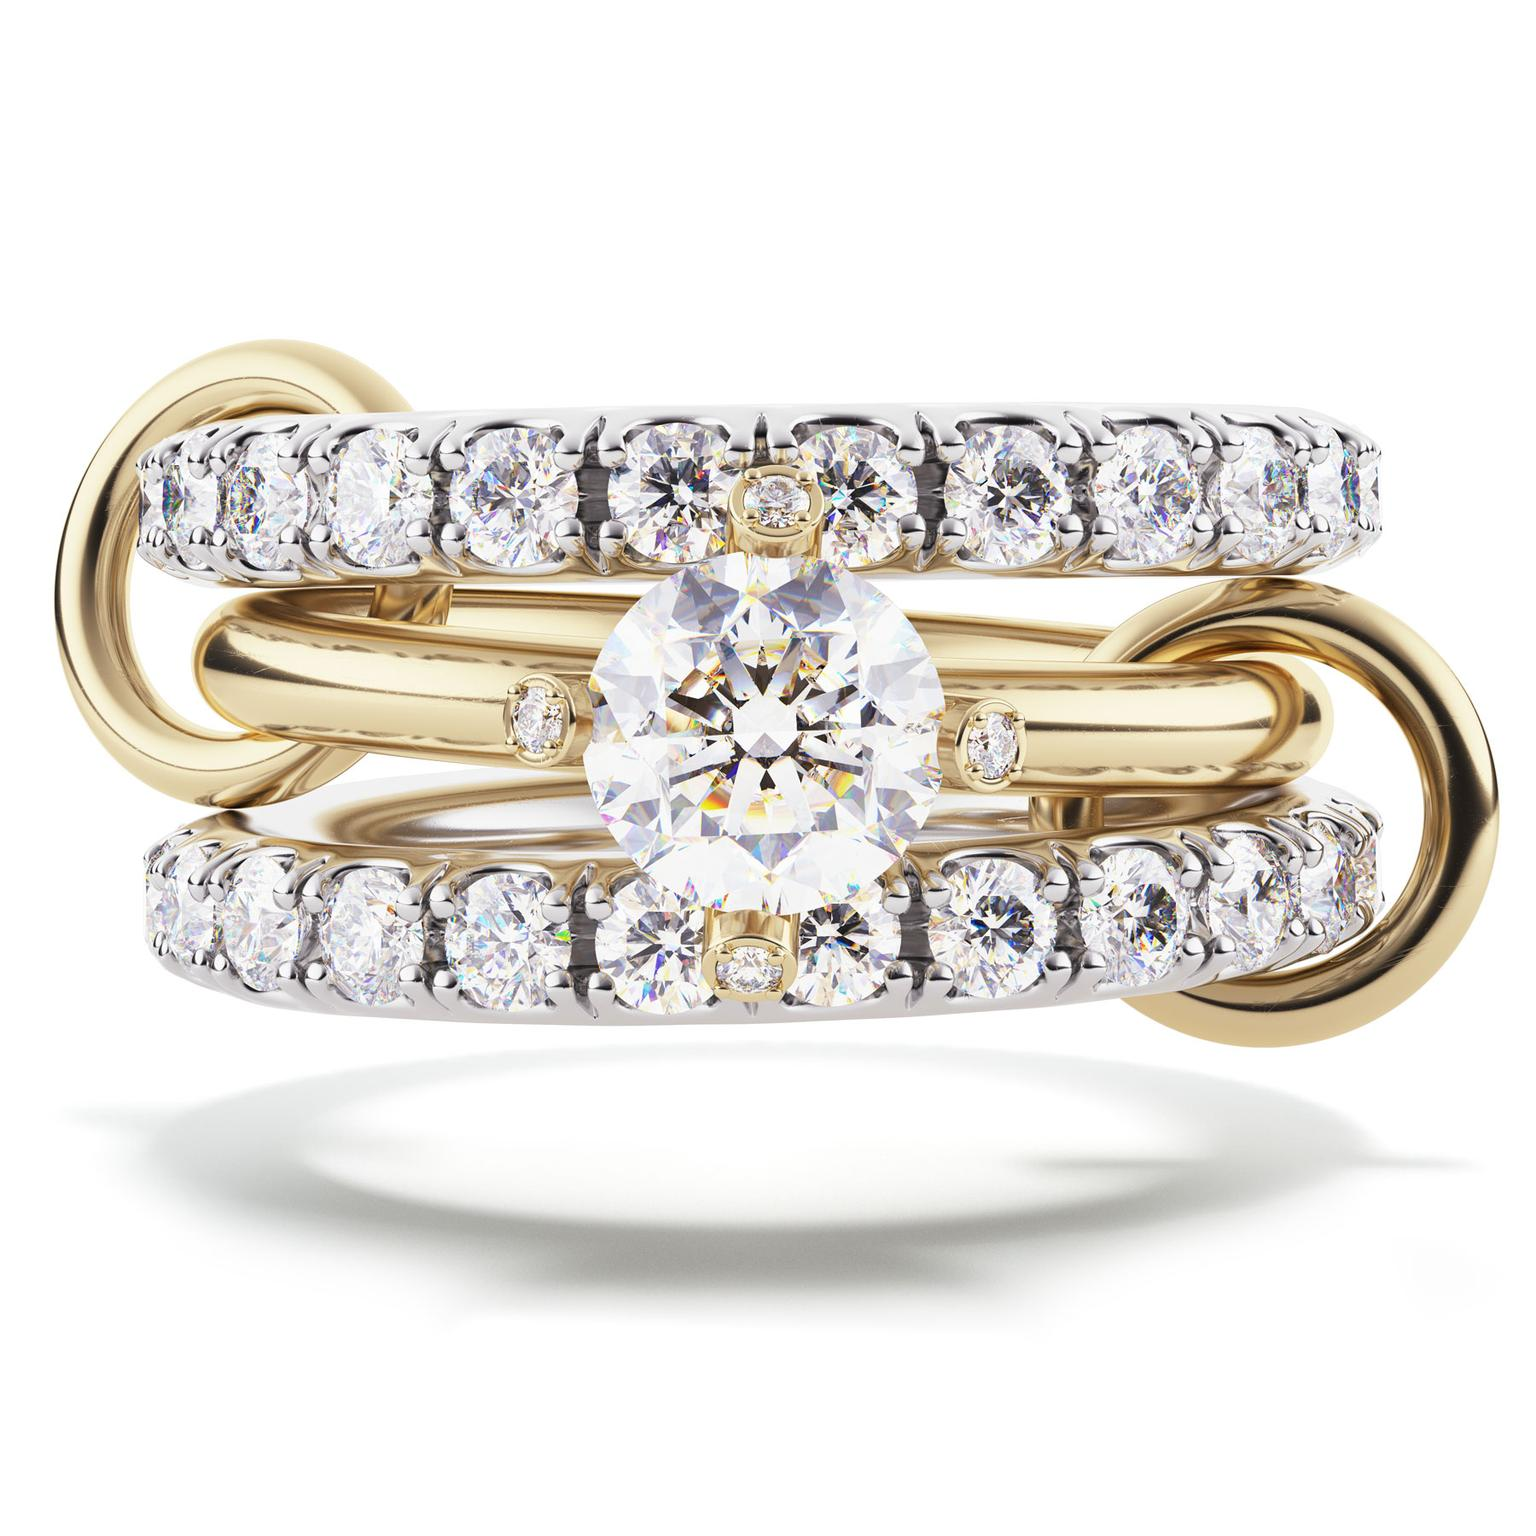 Spinelli Kilcollin Amor engagement ring